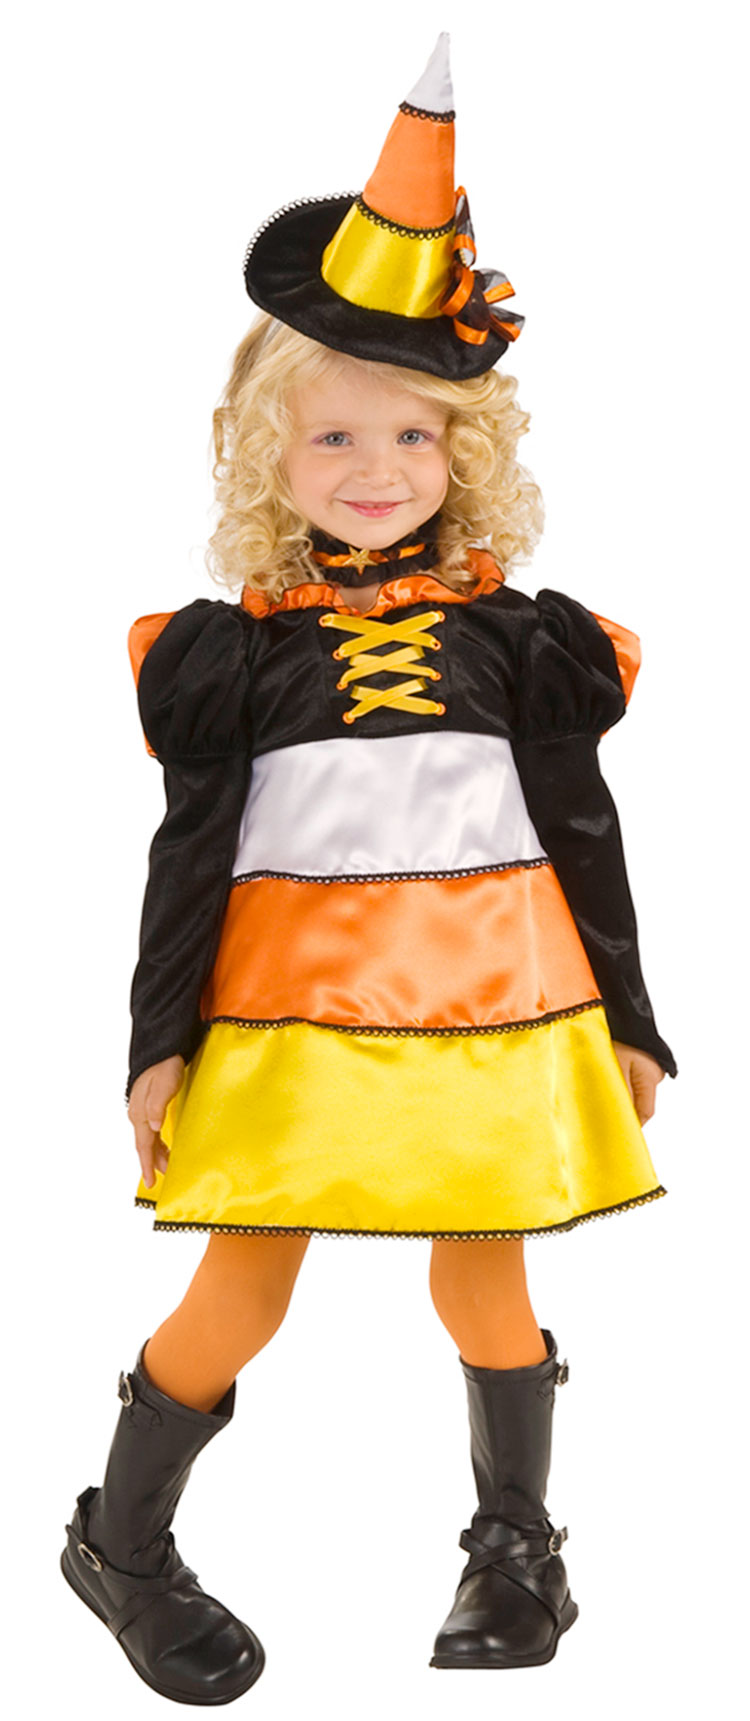 Girls and Toddler Candy Corn Witch Costume  sc 1 st  Costumes Life & Girls and Toddler Candy Corn Witch Costume : Costumes Life